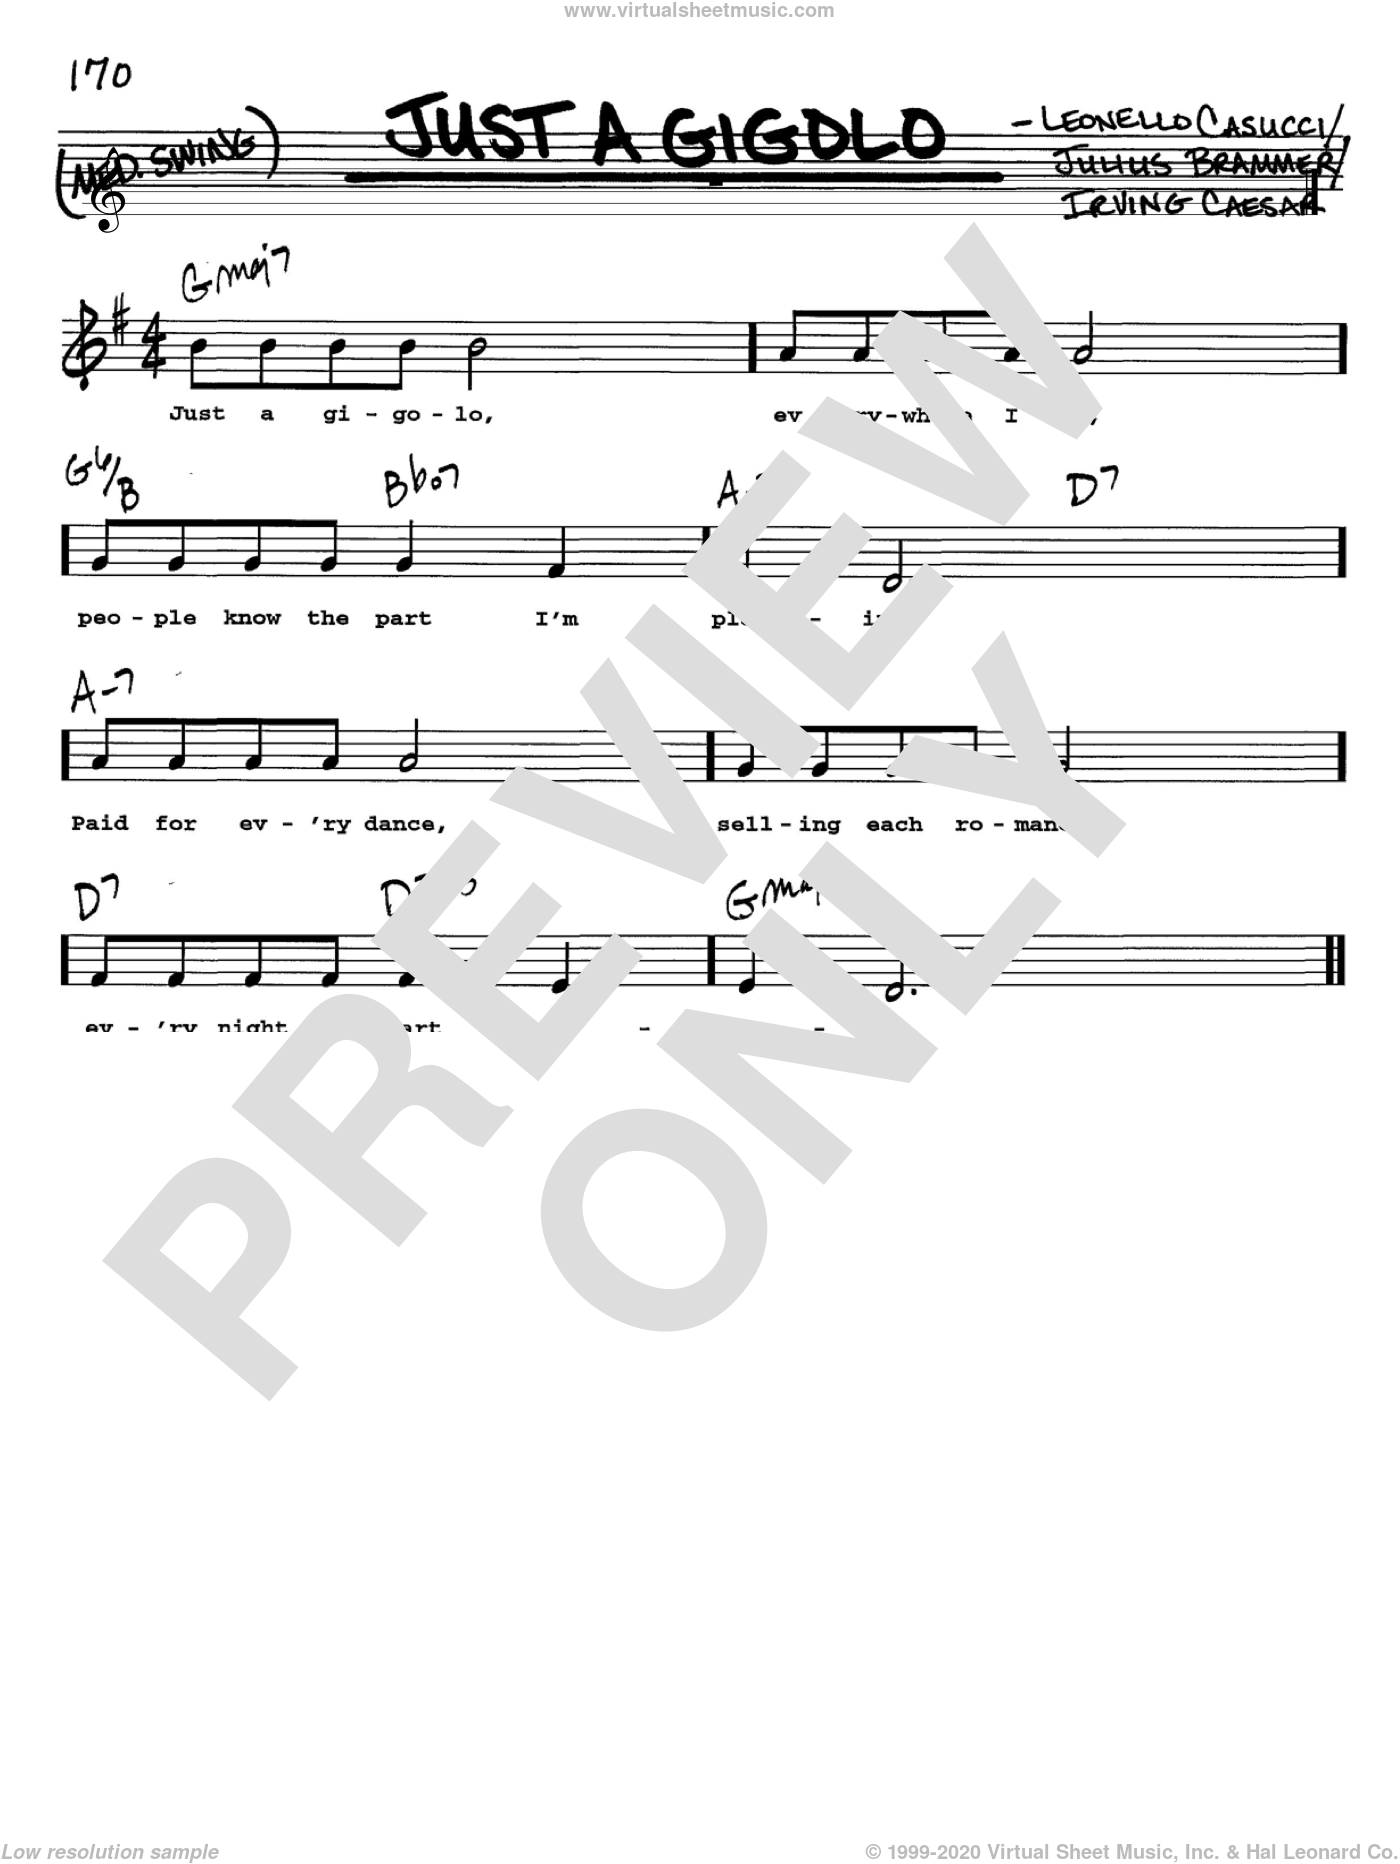 Just A Gigolo sheet music for voice and other instruments (Vocal Volume 2) by Leonello Casucci, Louis Armstrong and Irving Caesar. Score Image Preview.